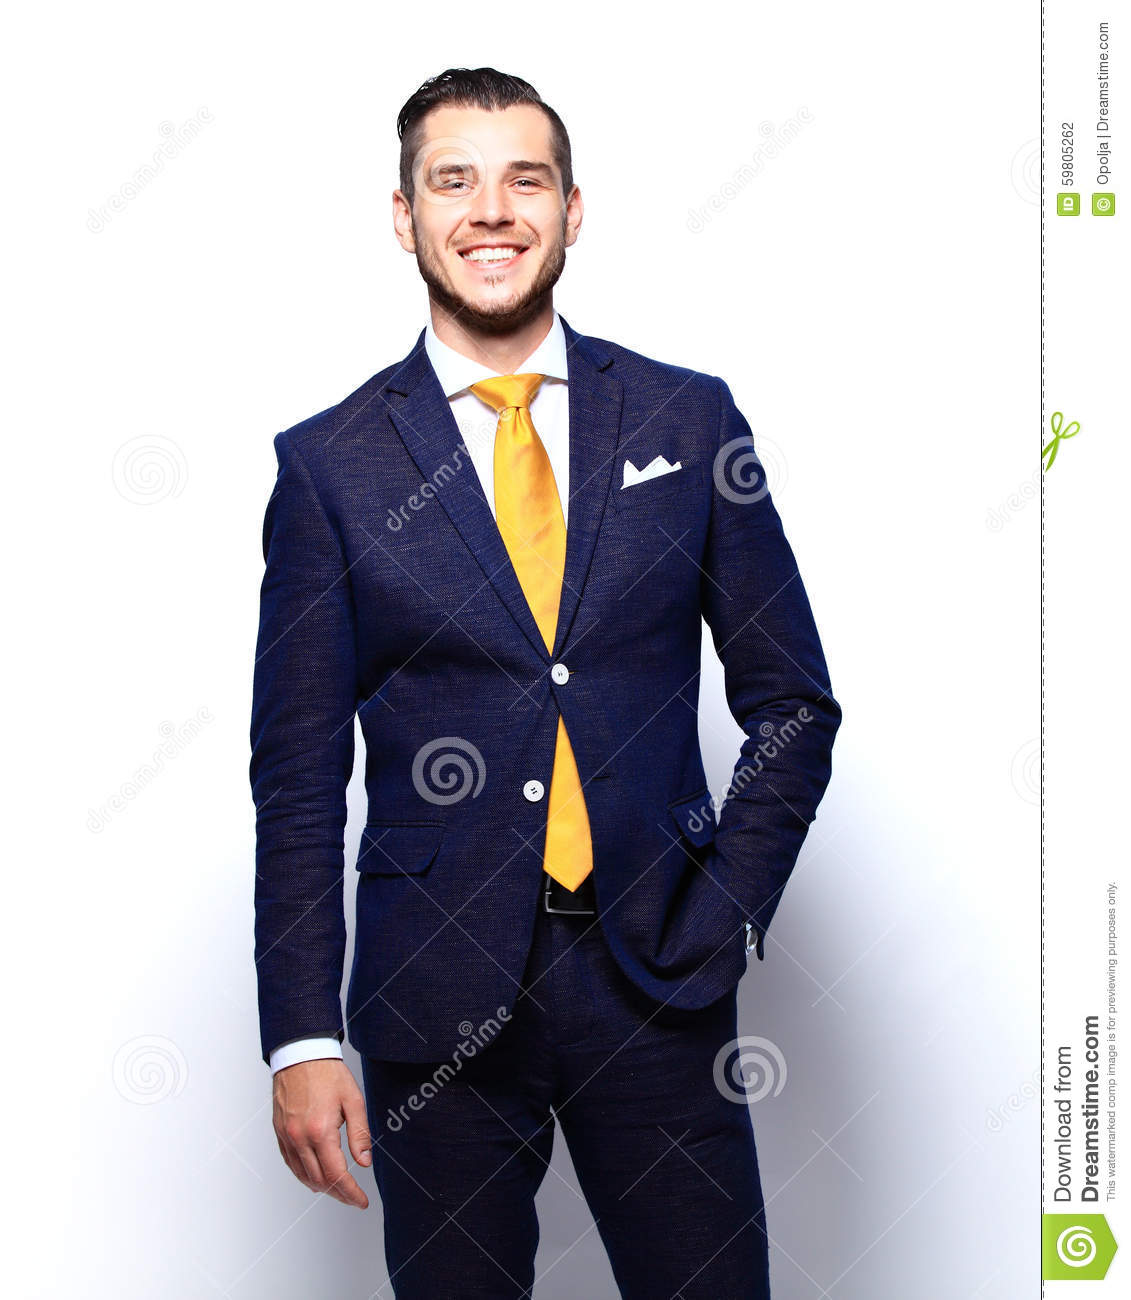 Portrait of happy smiling young businessman, isolated on white